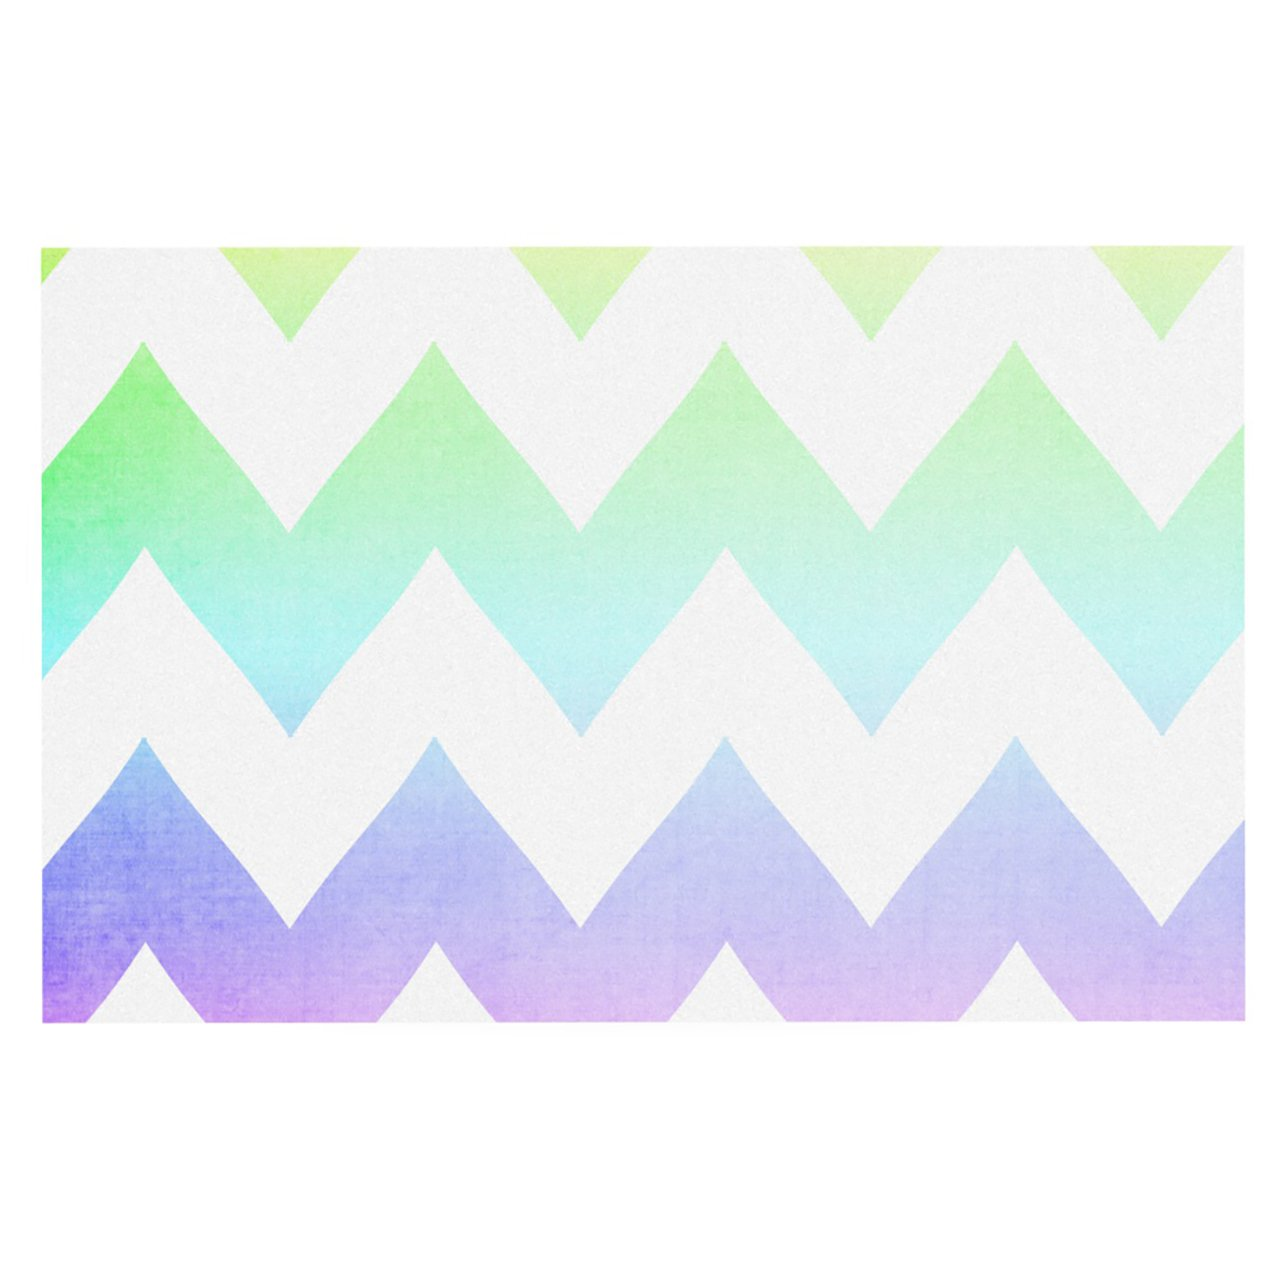 Kess InHouse Catherine McDonald Water Color Chevron Feeding Mat for Pet Bowl, 24 by 15-Inch